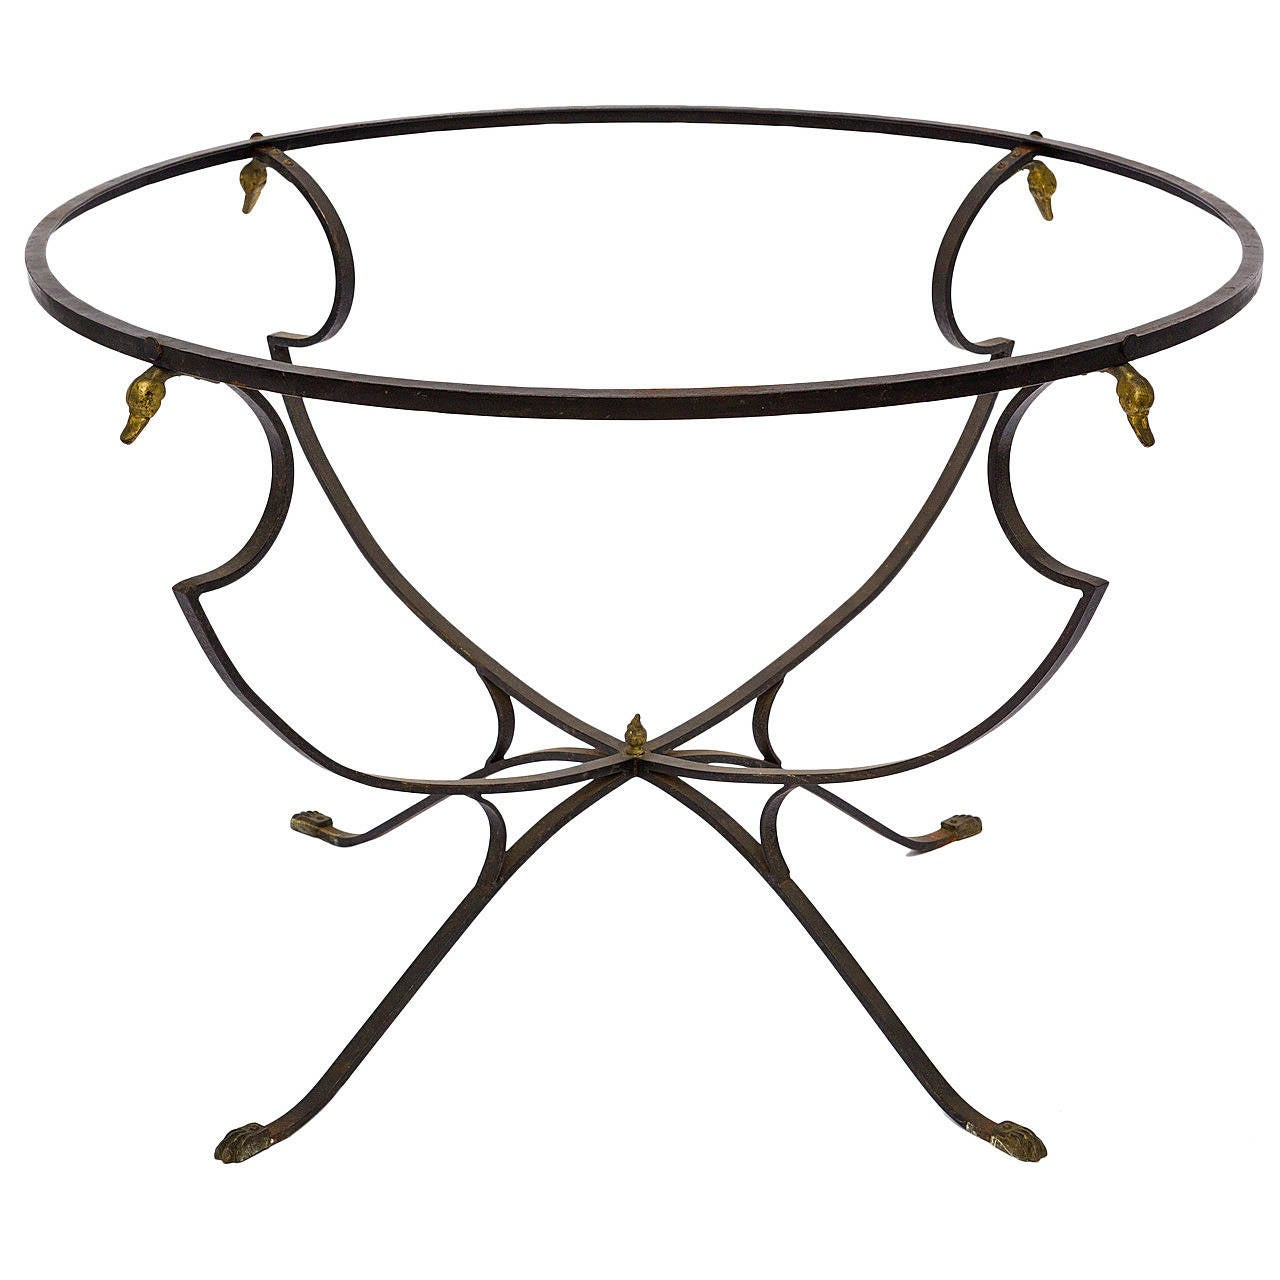 Iron And Brass Classical Table At 1stdibs